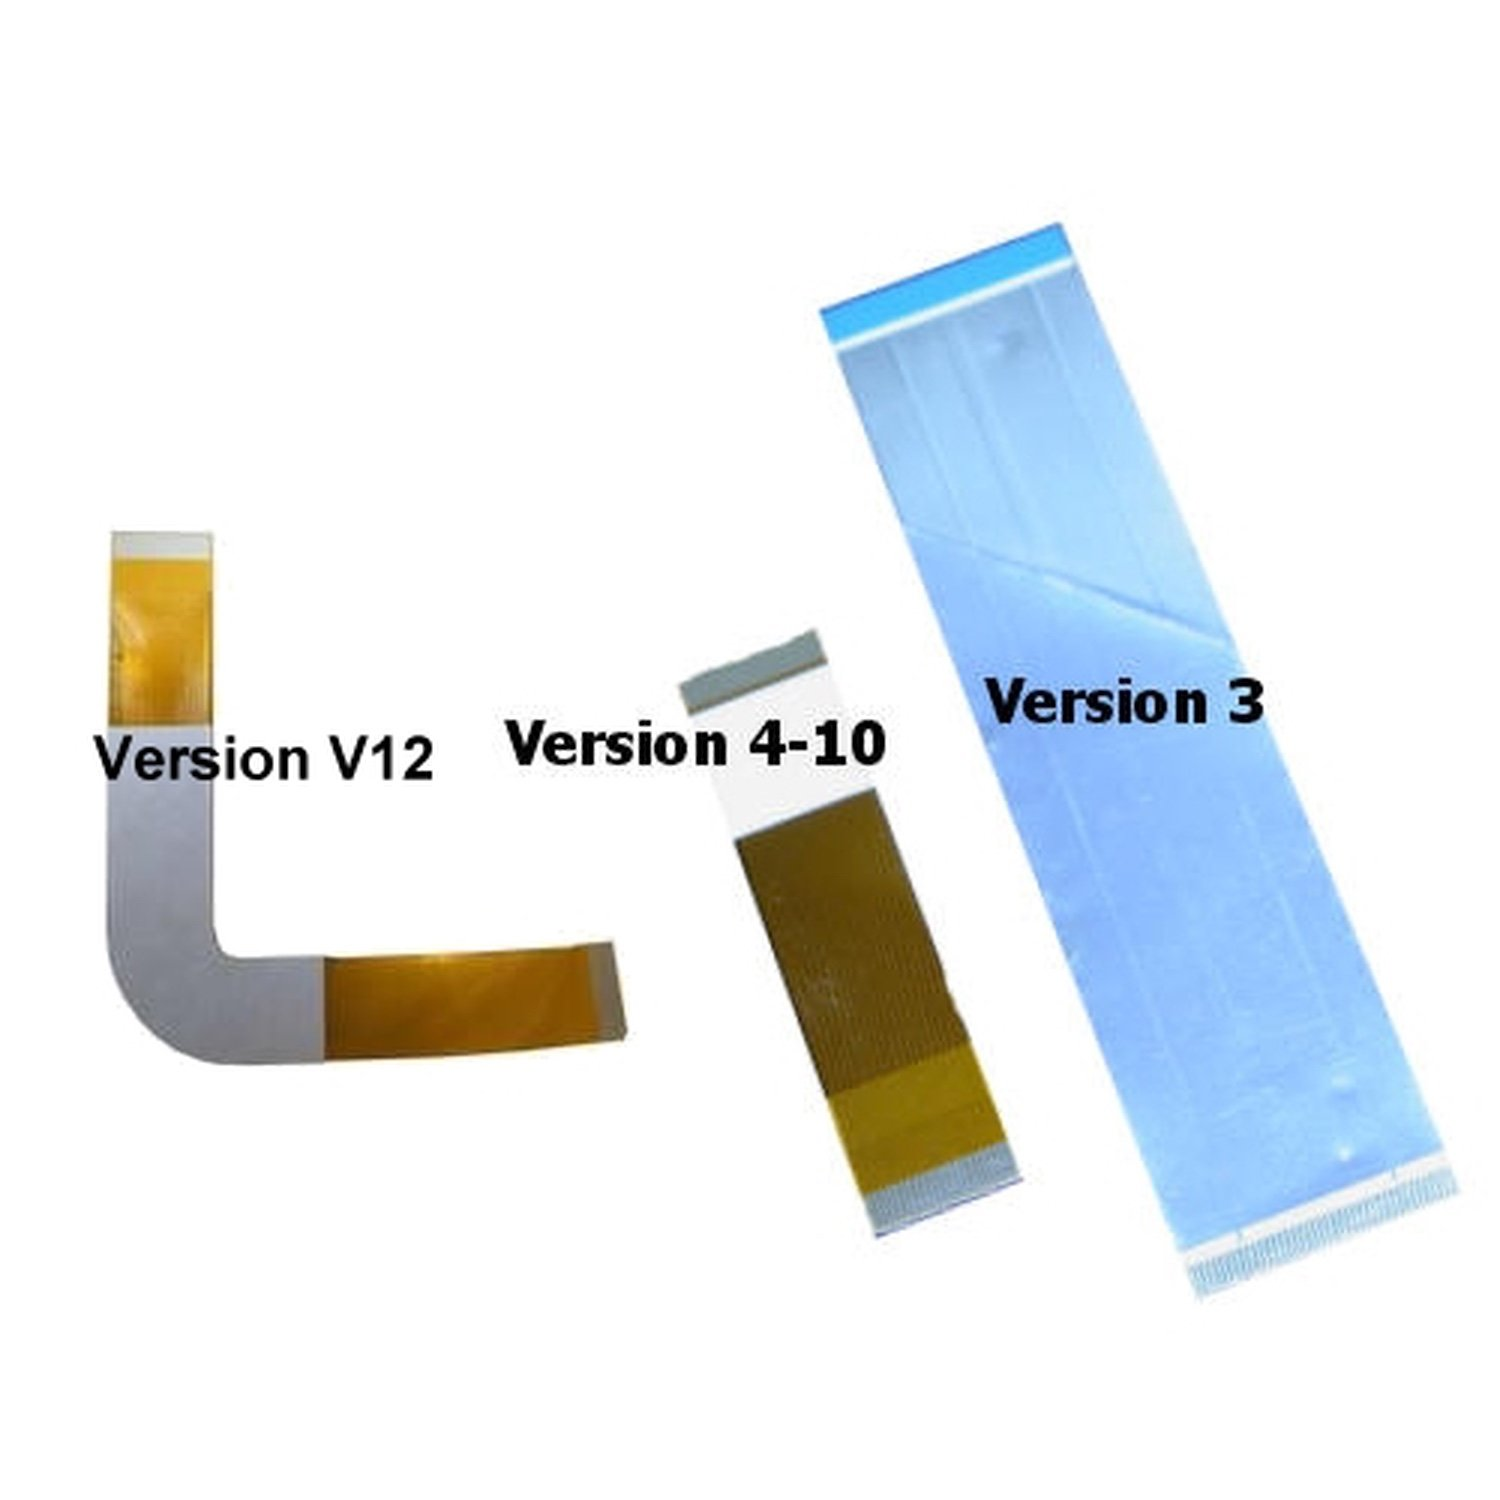 PS2 DVD/CD Cord Ribbon 3 versions aviable (v3), (v4-V10) & (v12-V13)